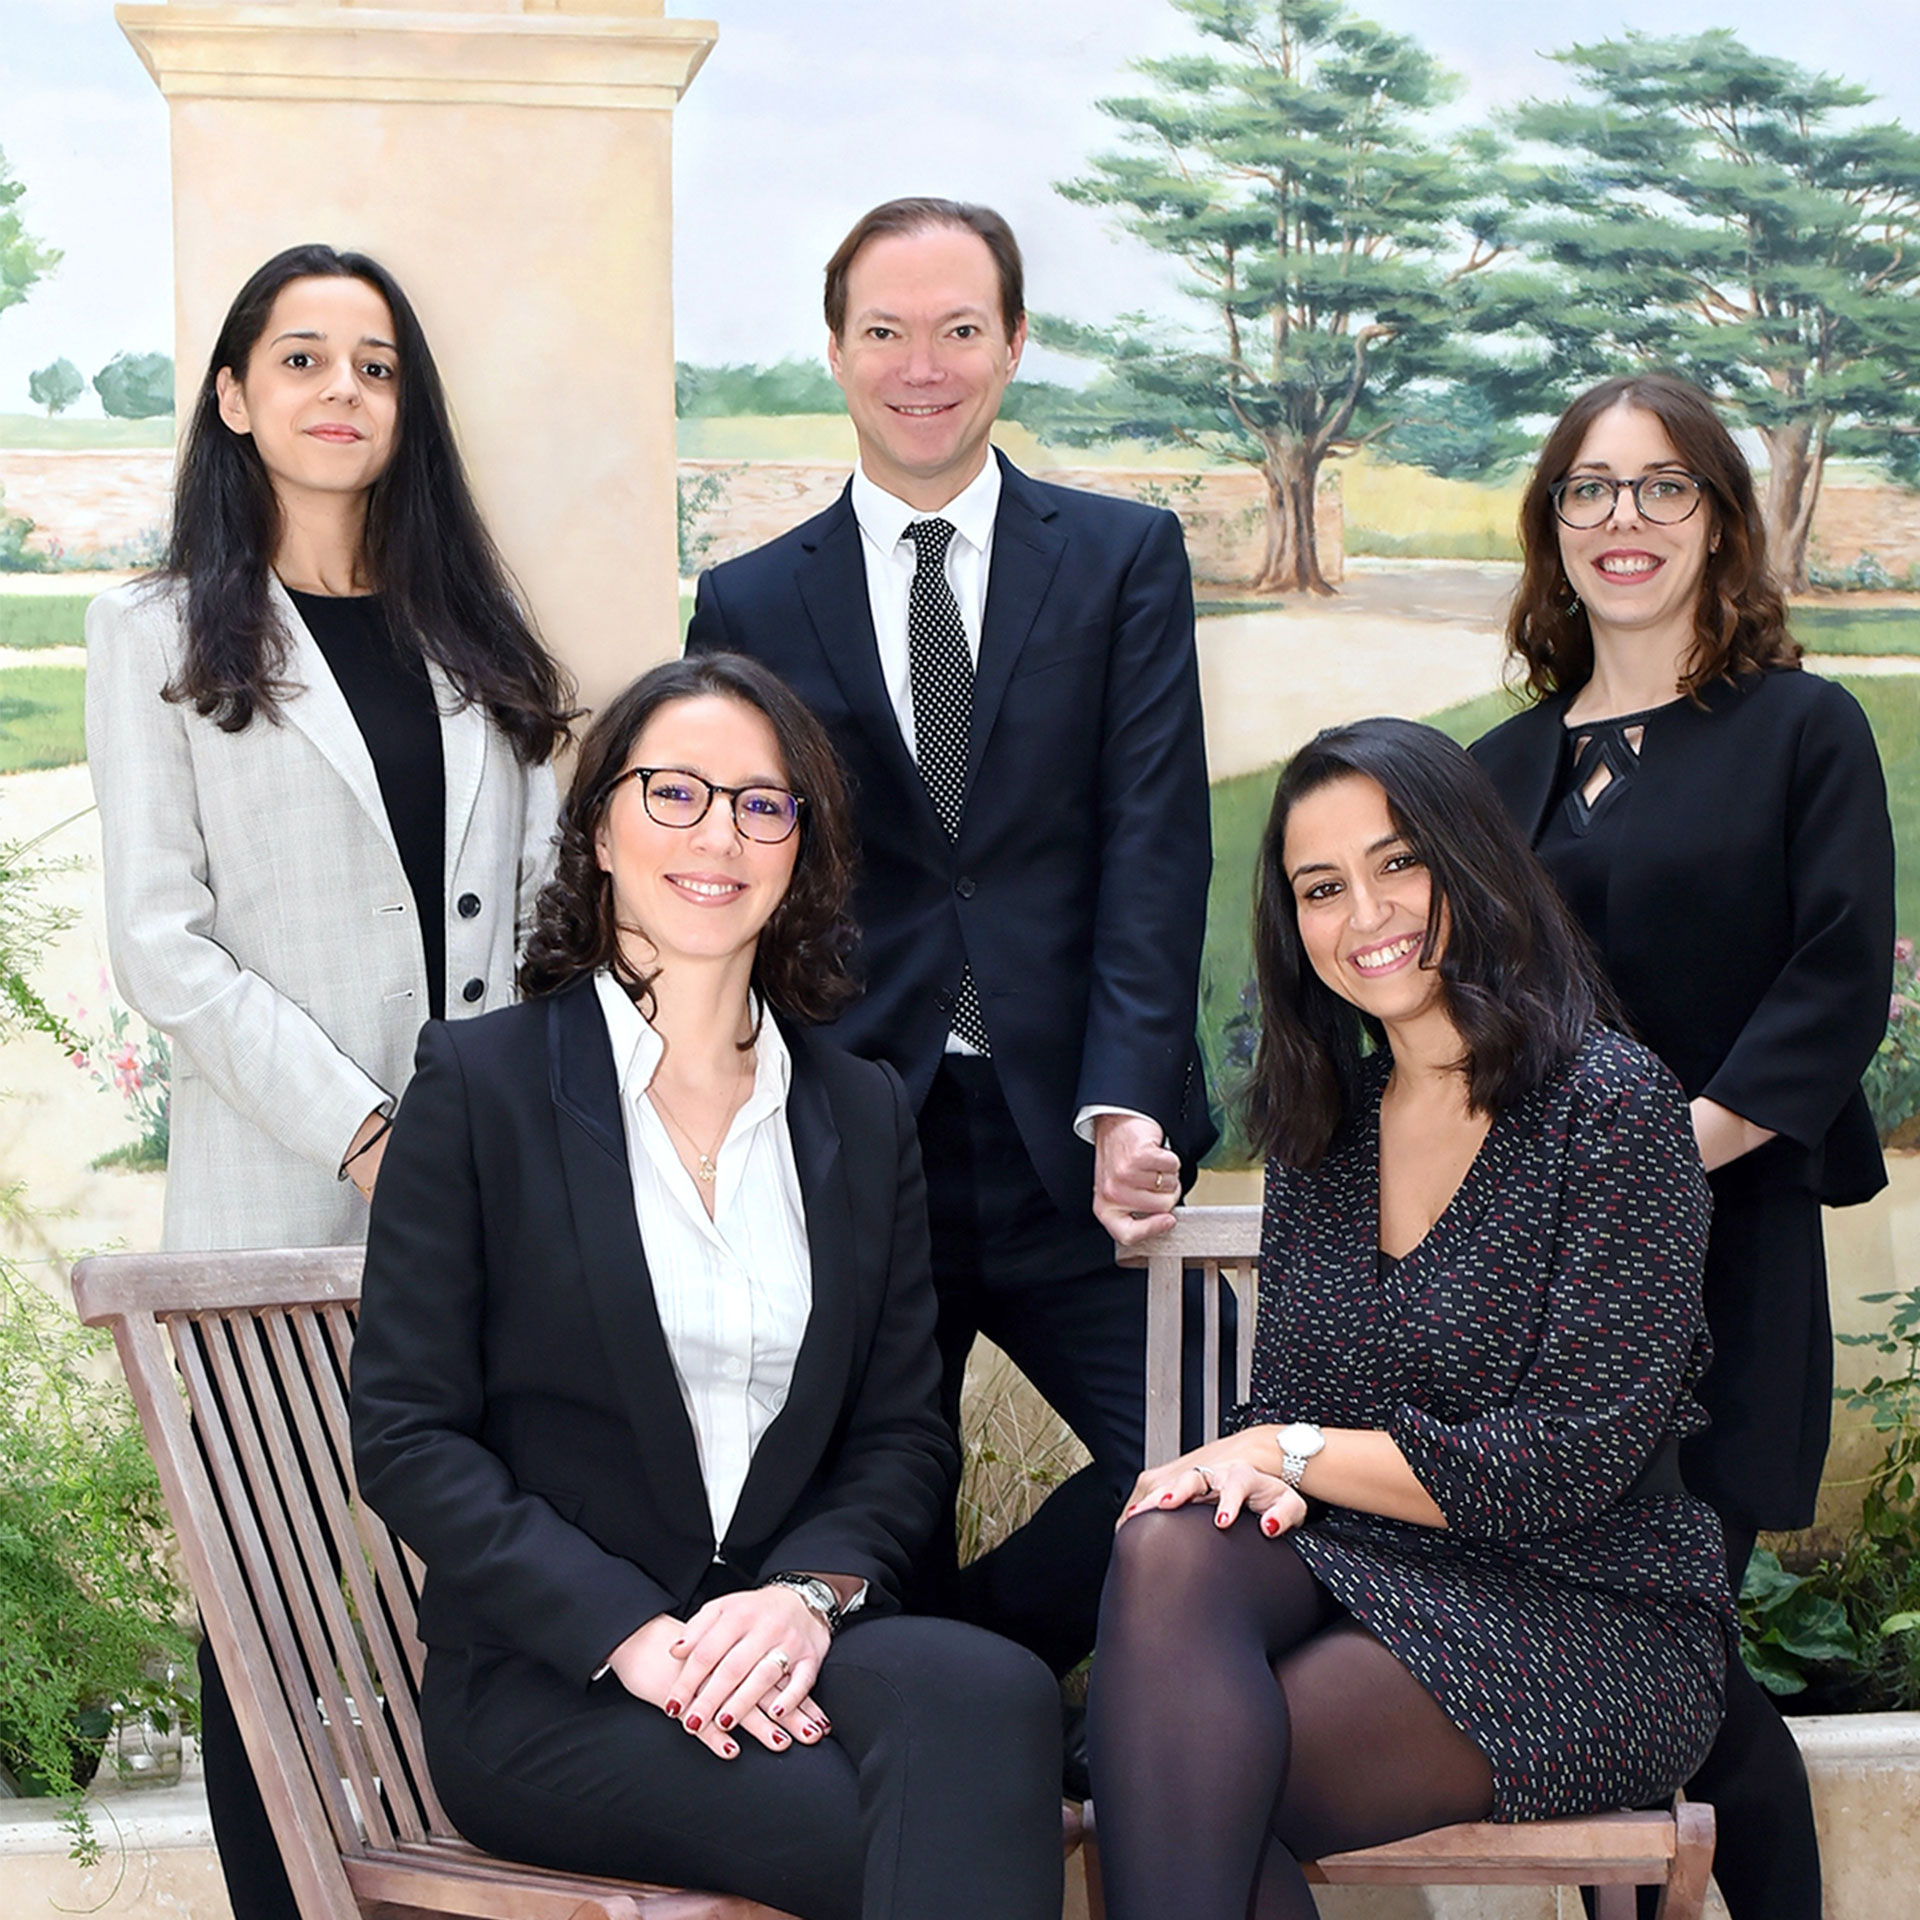 bourayne-preissl-avocats-lawyers-antwal-paris-team-equipe